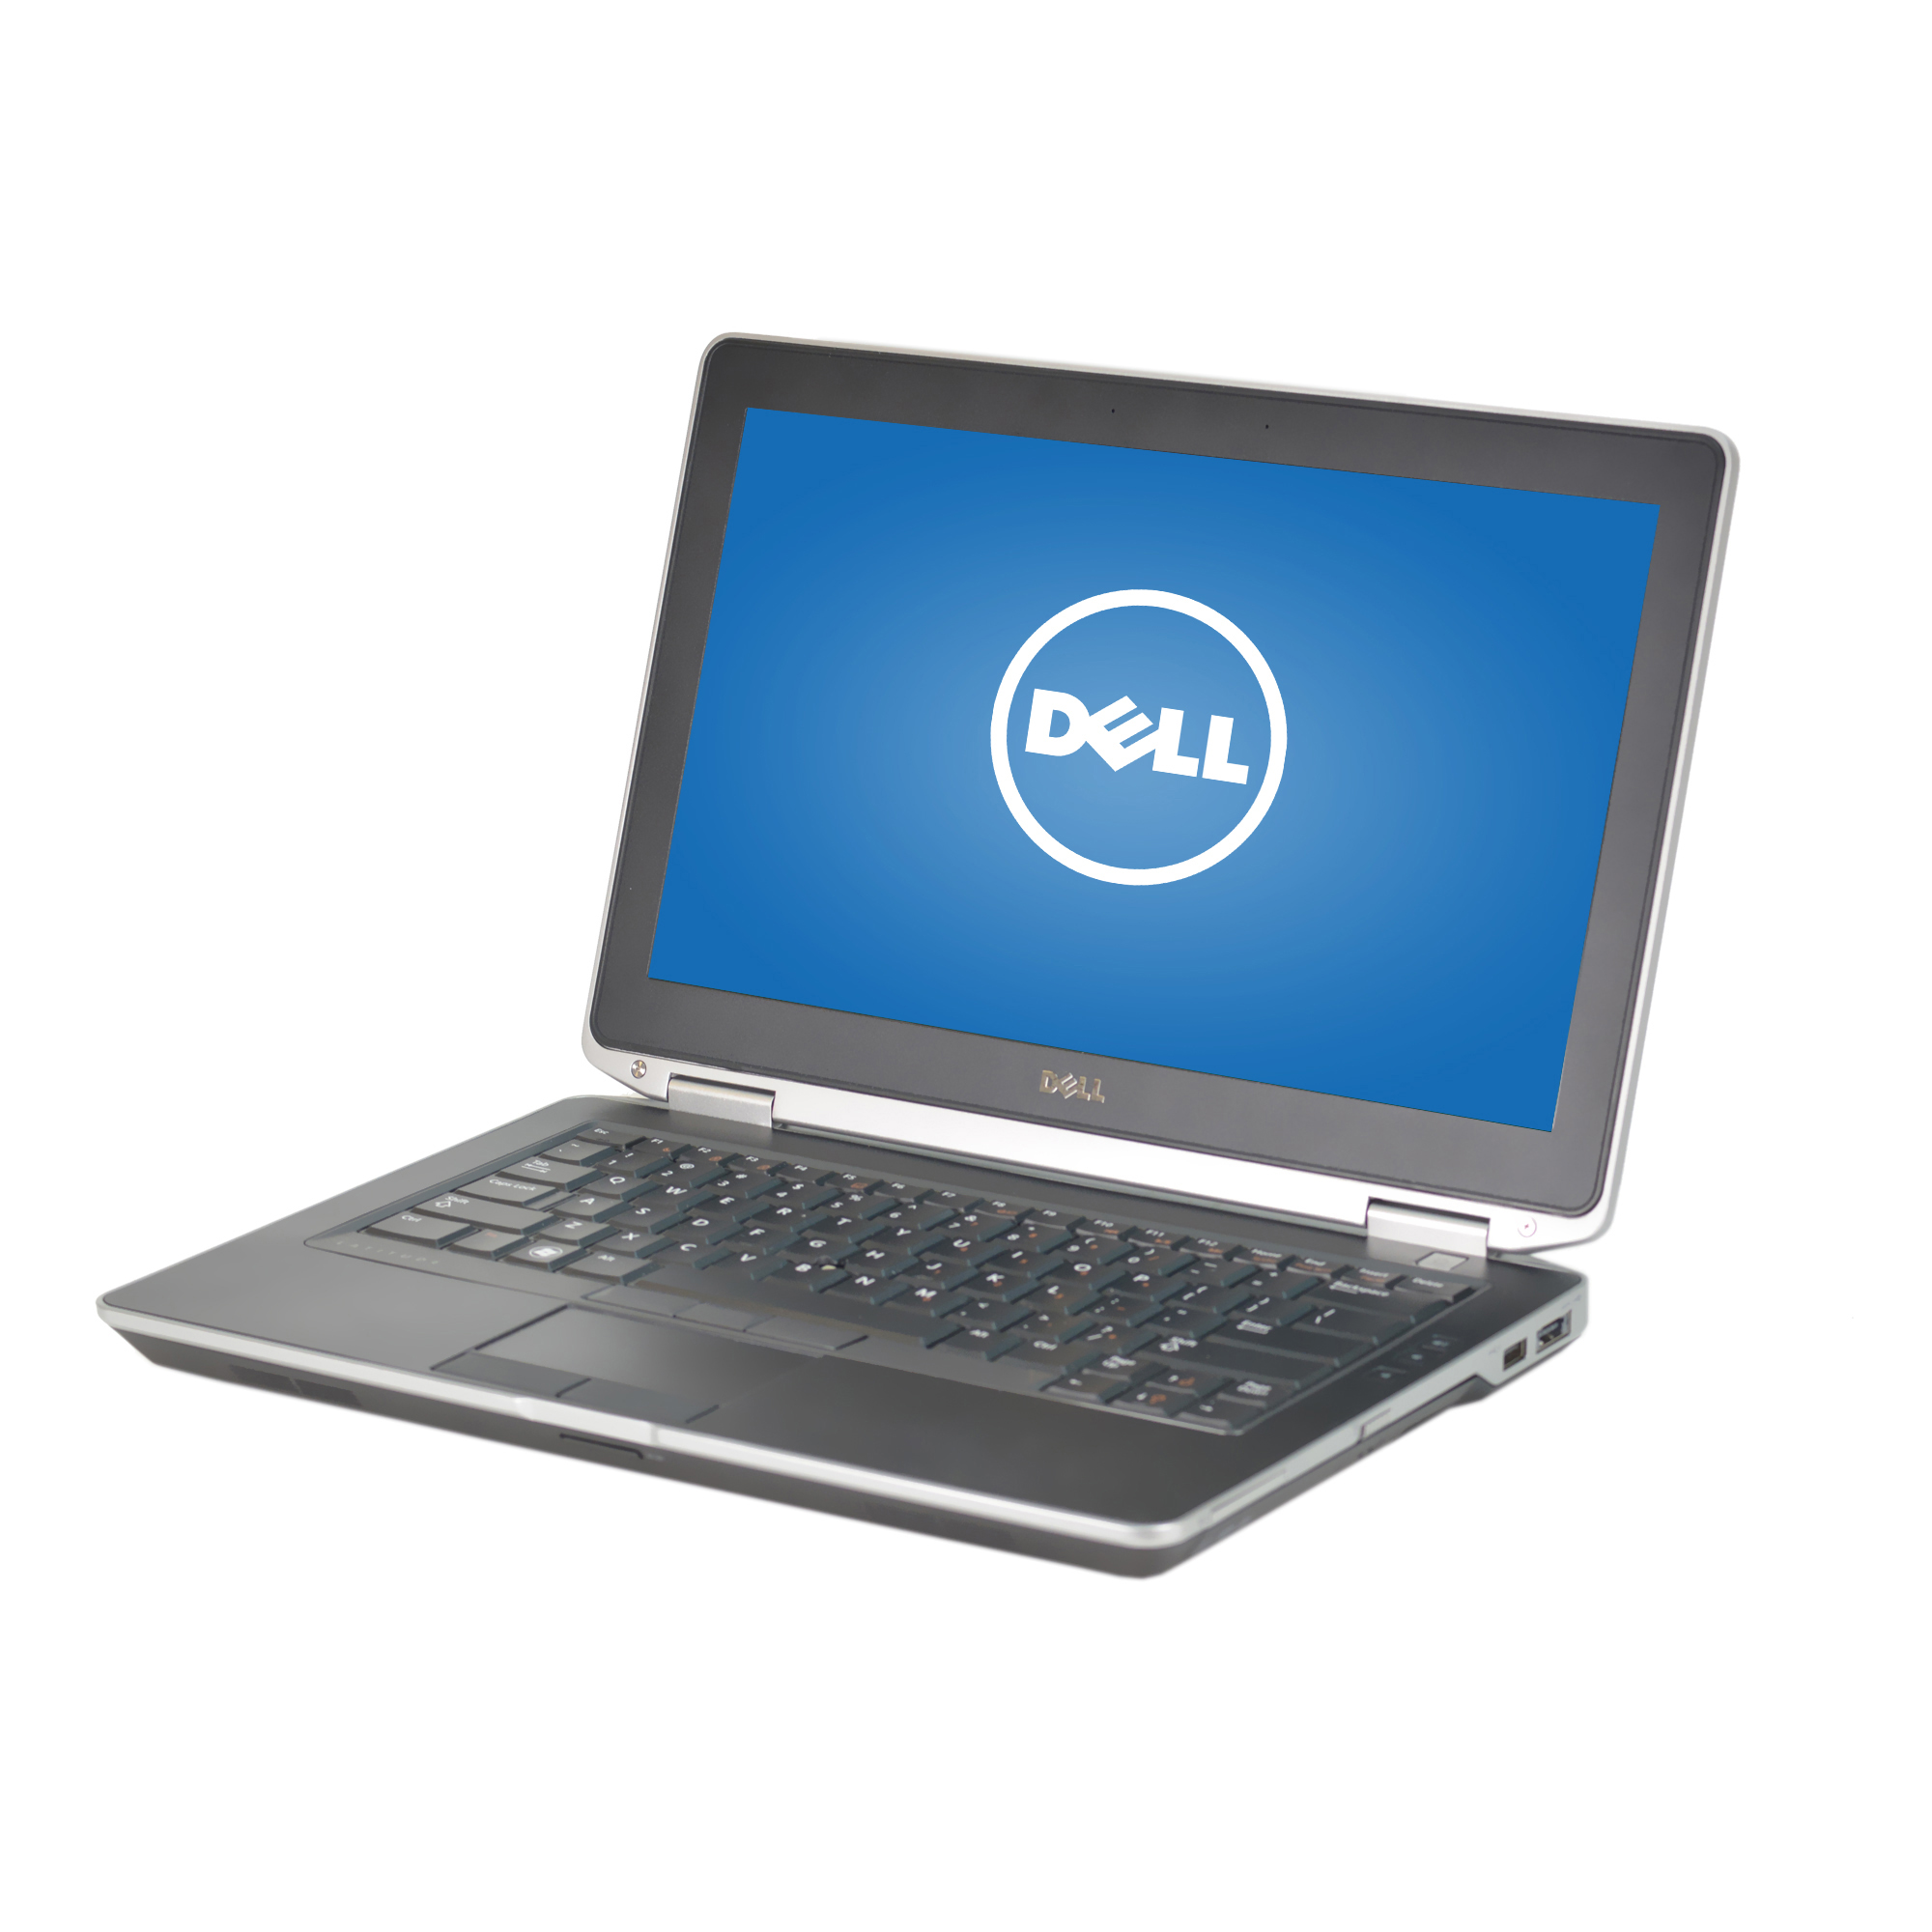 "Refurbished Dell Silver 13.3"" Latitude E6330 WA5-1096 Laptop PC with Intel Core i5-3320M Processor, 4GB Memory, 320GB Hard Drive and Windows 10 Pro"